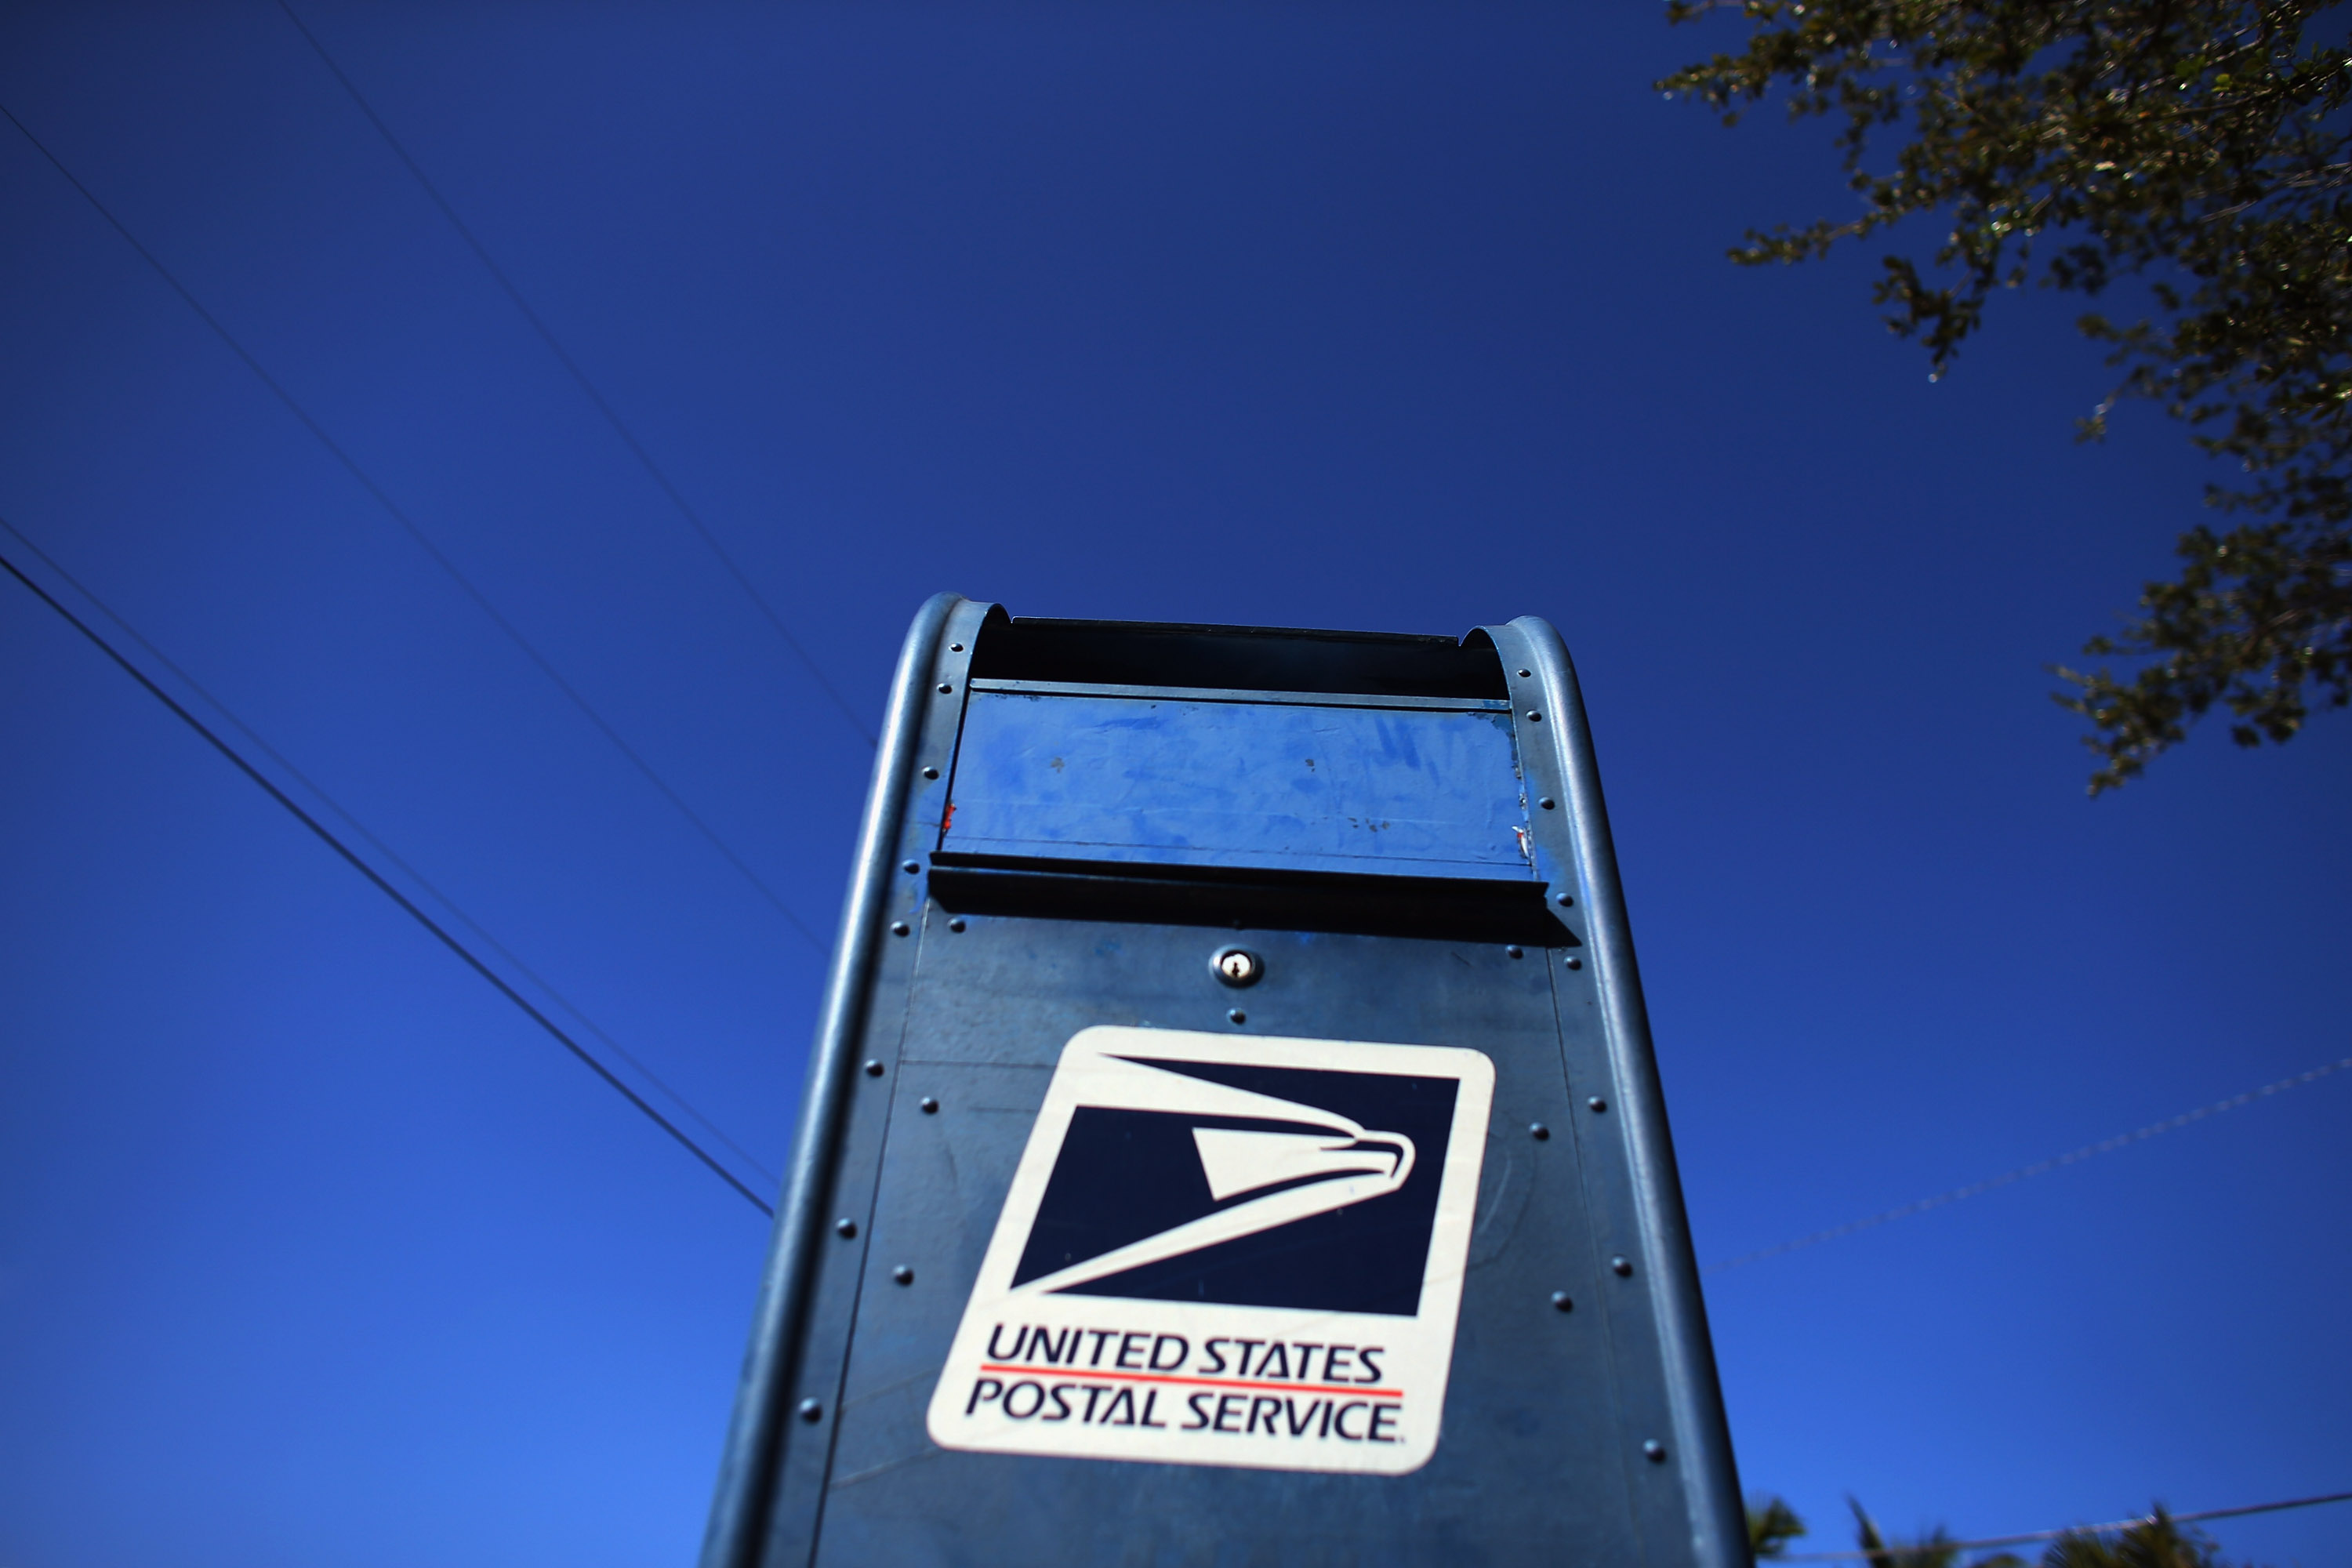 The U.S. Postal Service's $8.8 billion in losses for 2019 may be down to requirements places on the agency, rather than its business plan. (Joe Raedle/Getty Images)